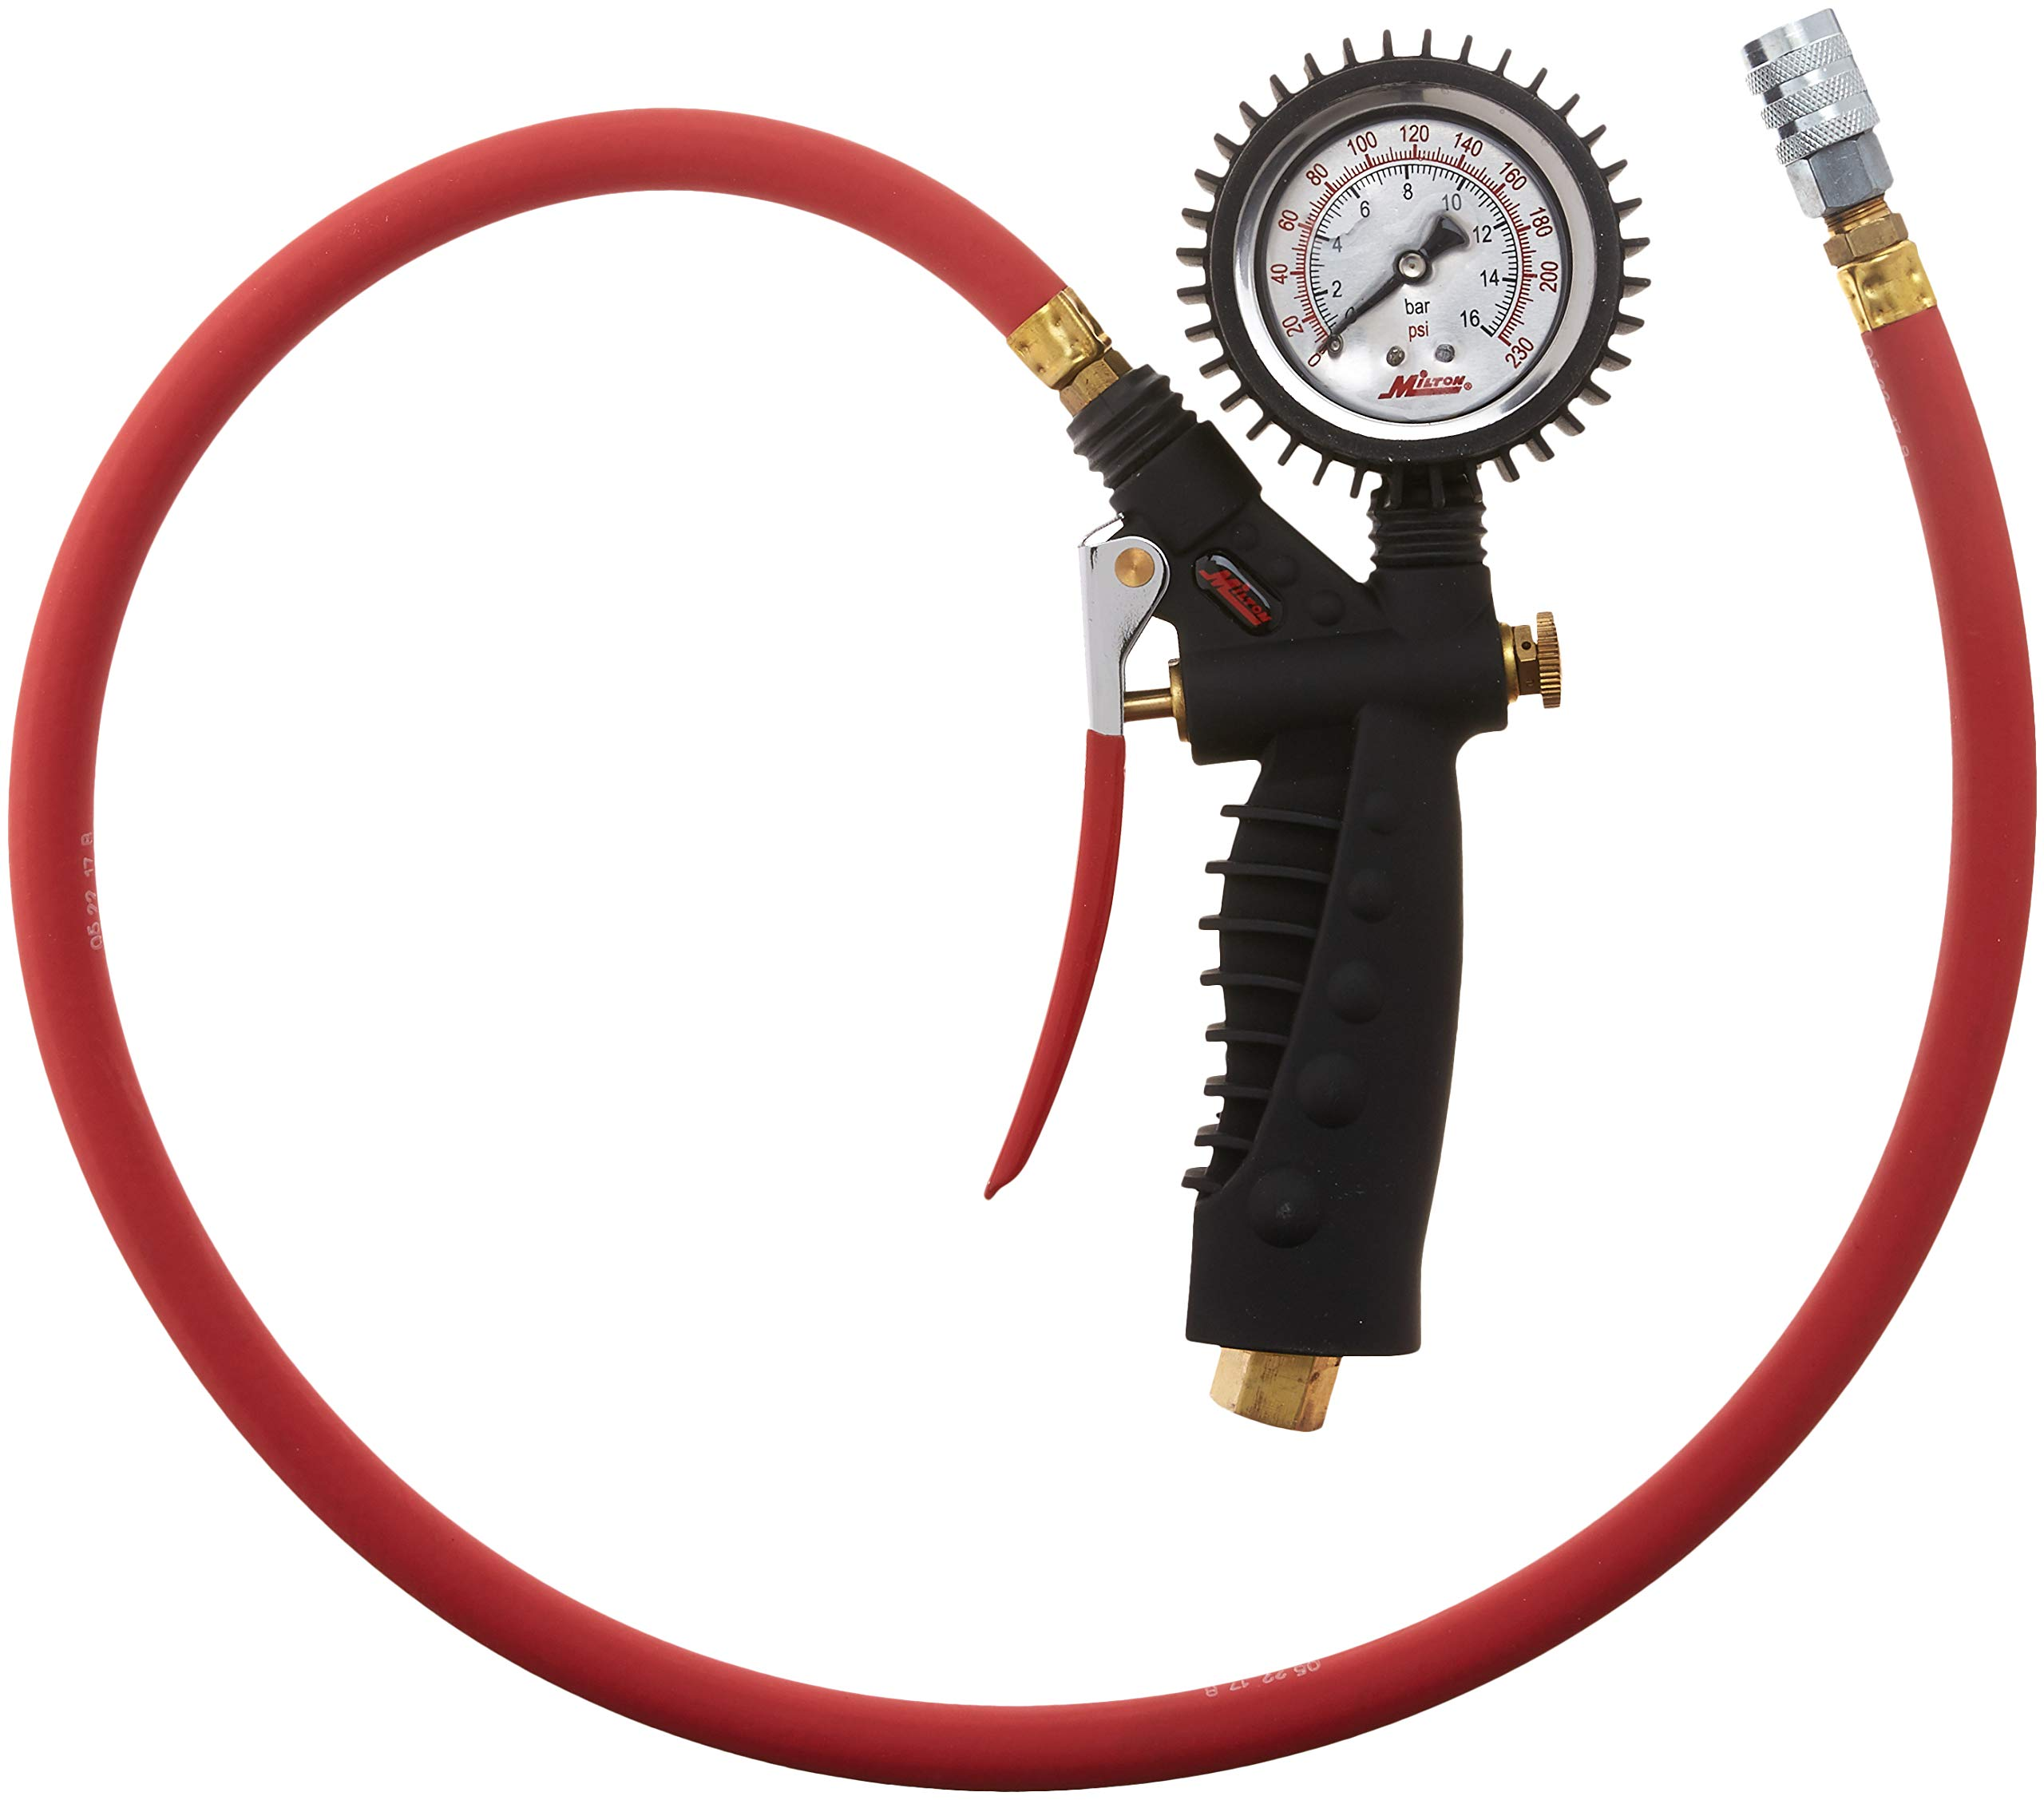 Milton 572A Pro Analog Pistol Grip Inflator Gauge - 36'' Hose and Kwik Grip Safety Chuck - 160 PSI